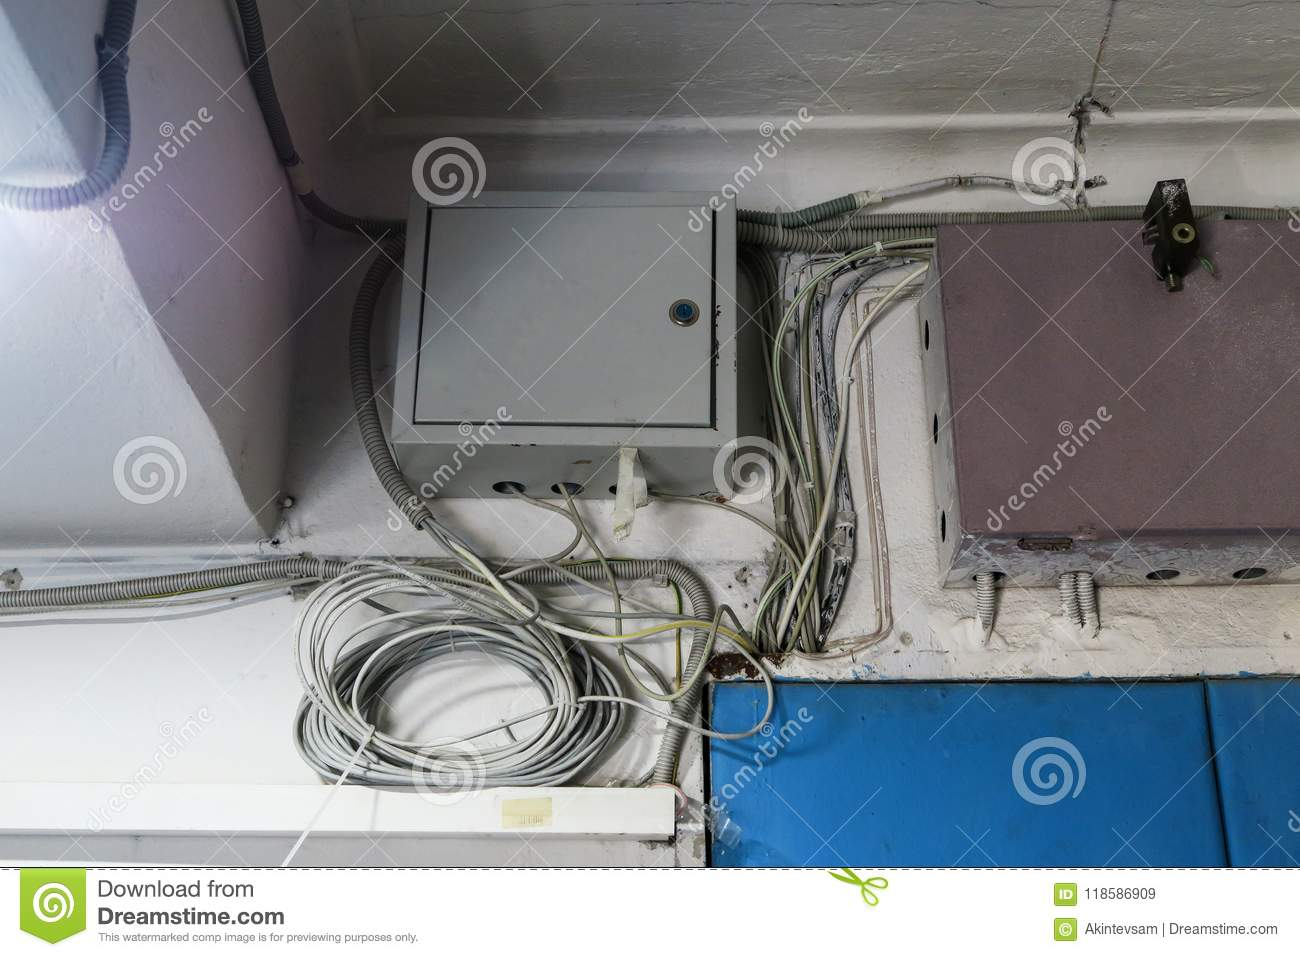 Brilliant Internet Wires Metal Box With Equipment For The Internet Under Lock Wiring 101 Capemaxxcnl